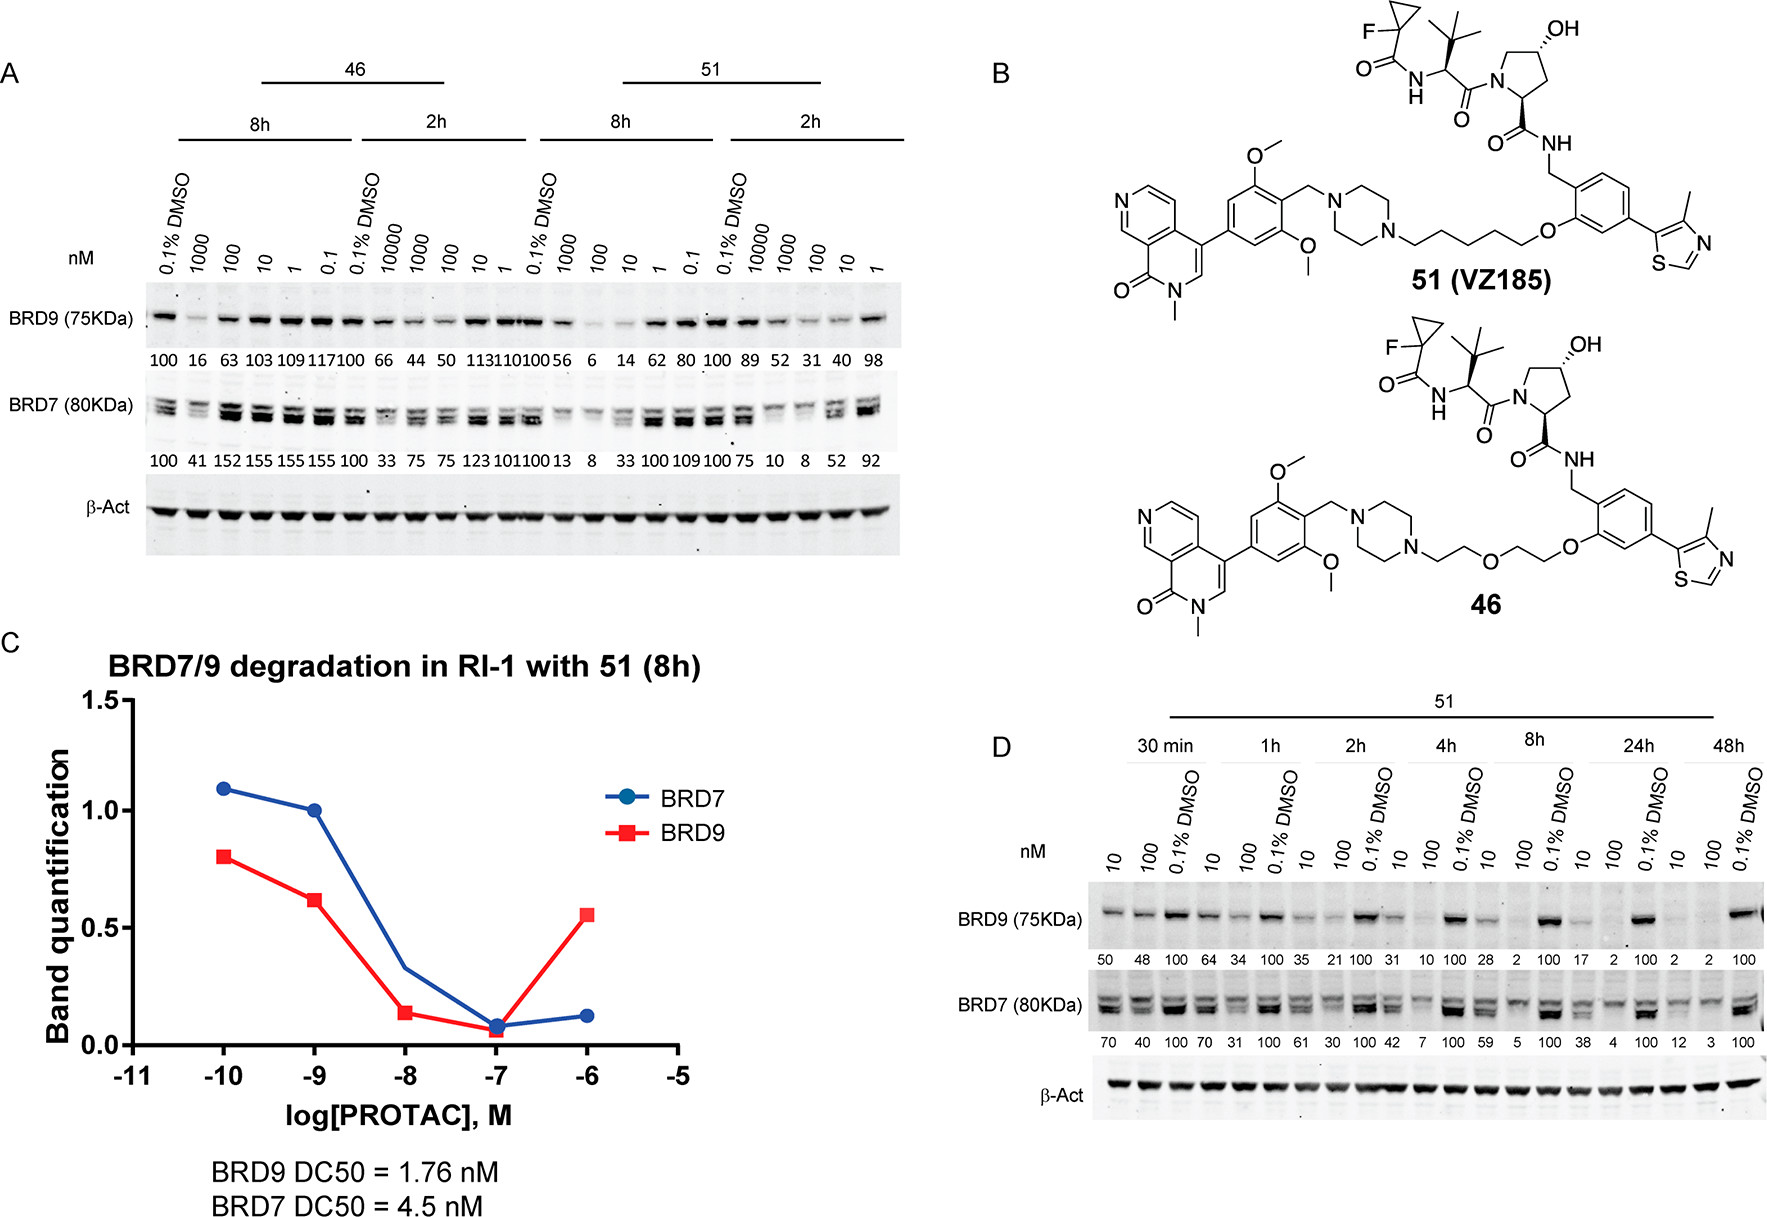 Figure 8. VZ185 induces strong and rapid degradation in a time- and dose-dependent manner.